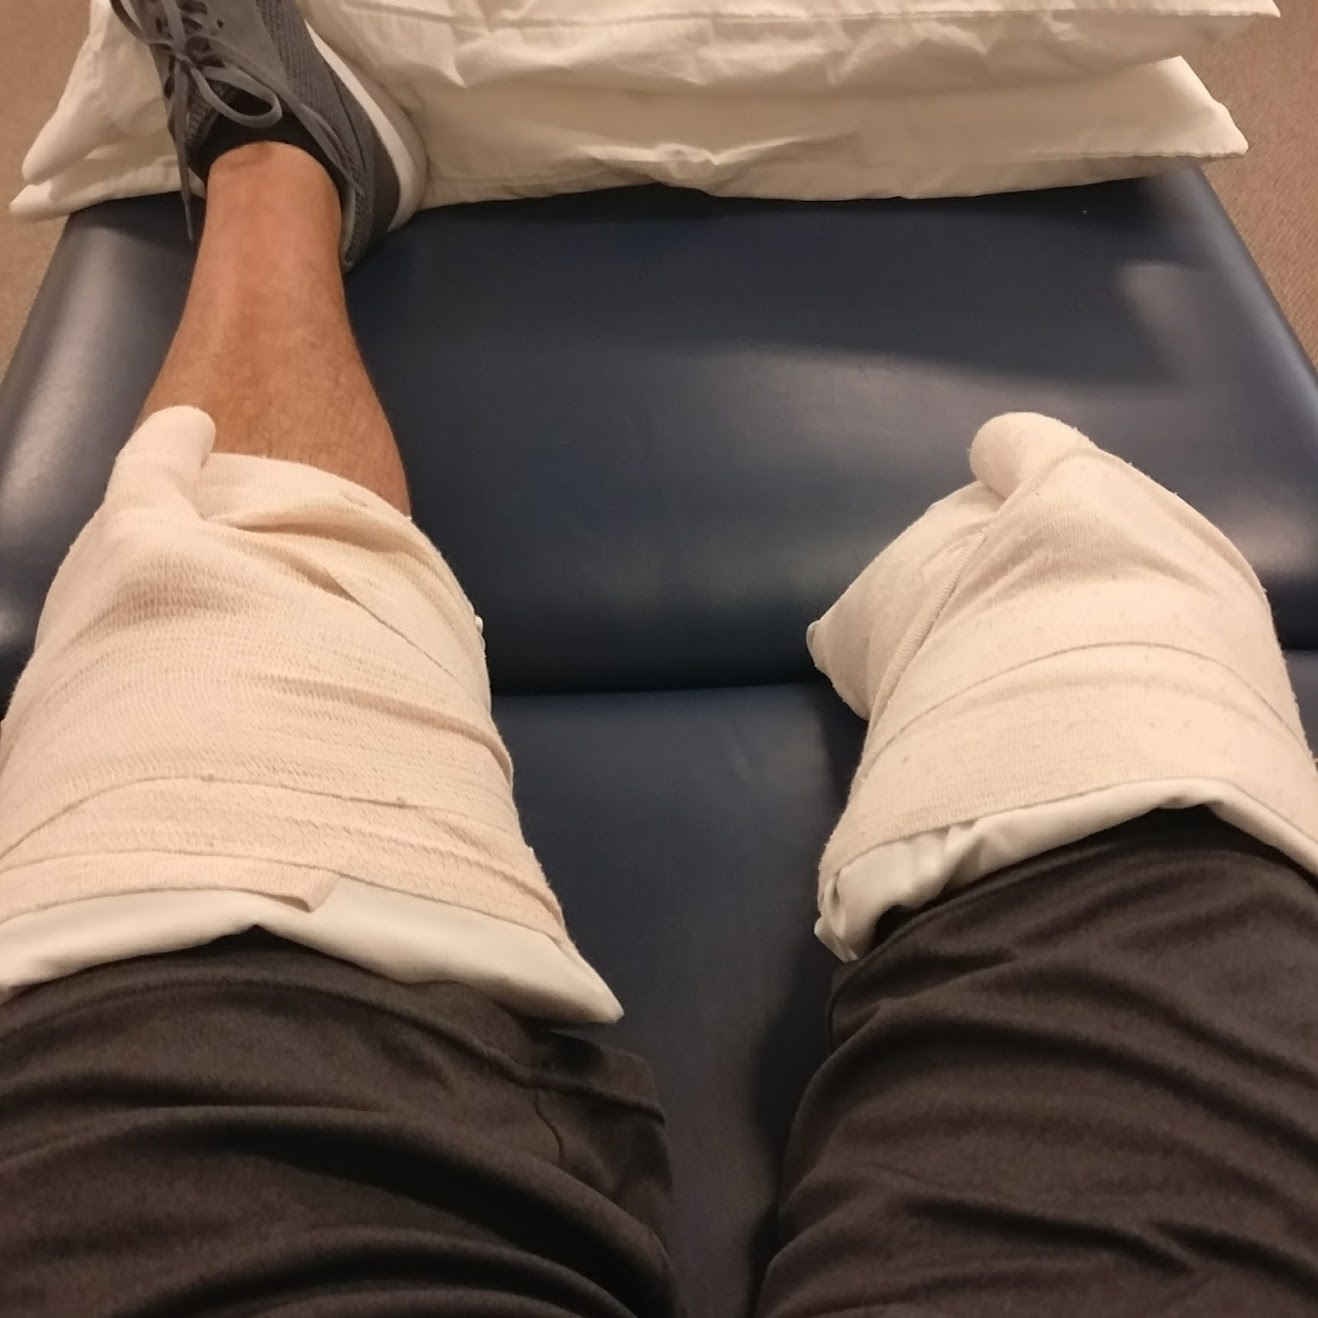 What to expect as a new leg amputee